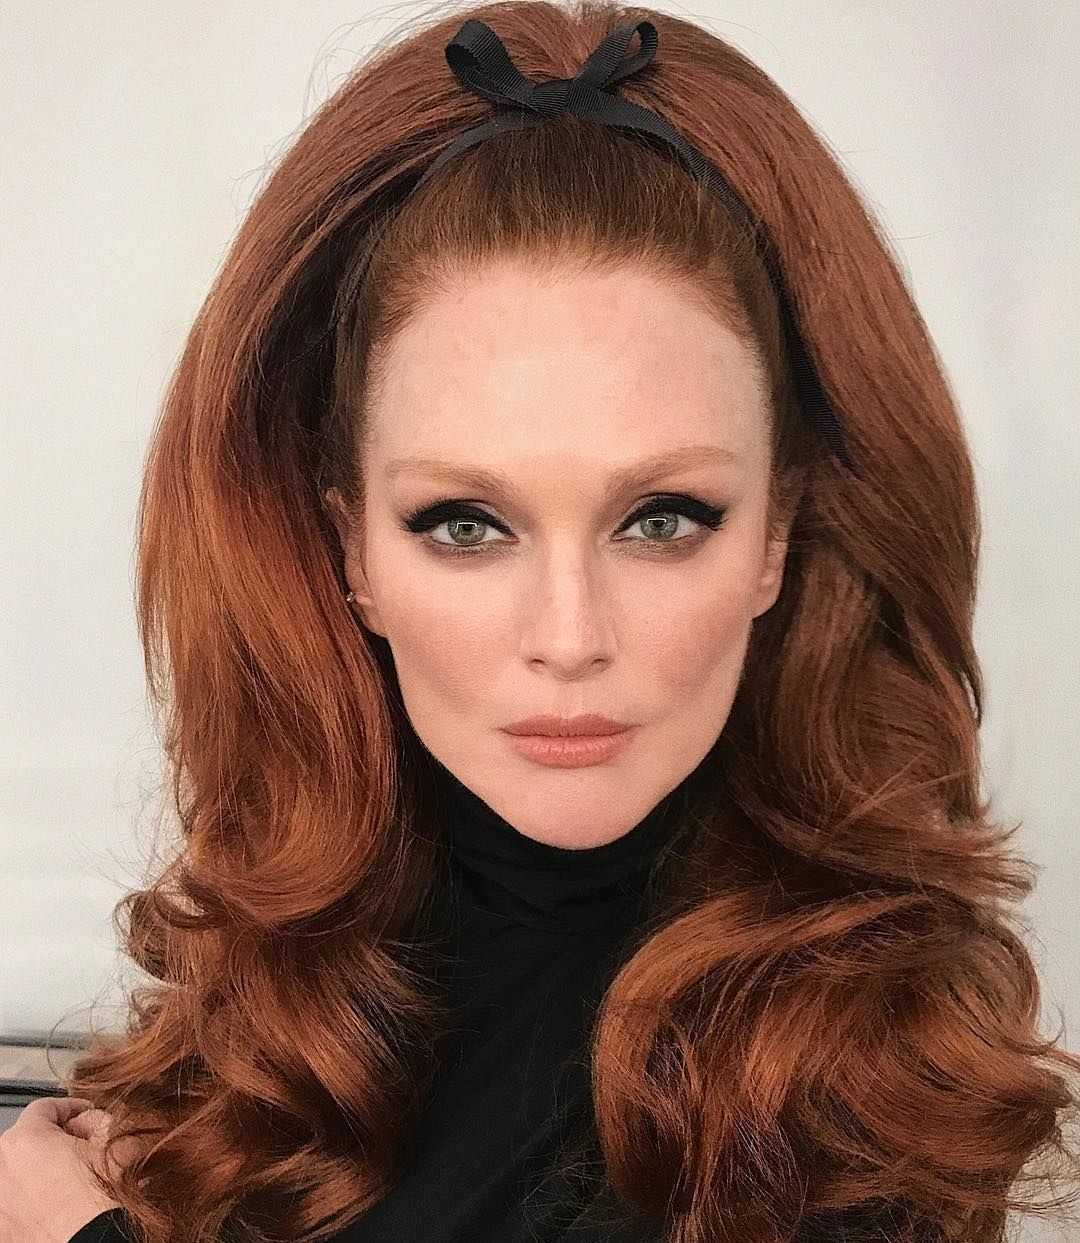 Julianne Moore S 60s Bouffant Winnie Harlow S Lime Green Shadow And More Of The Best Beauty Instagrams This Week Hair Styles Long Hair Styles 1960s Hair